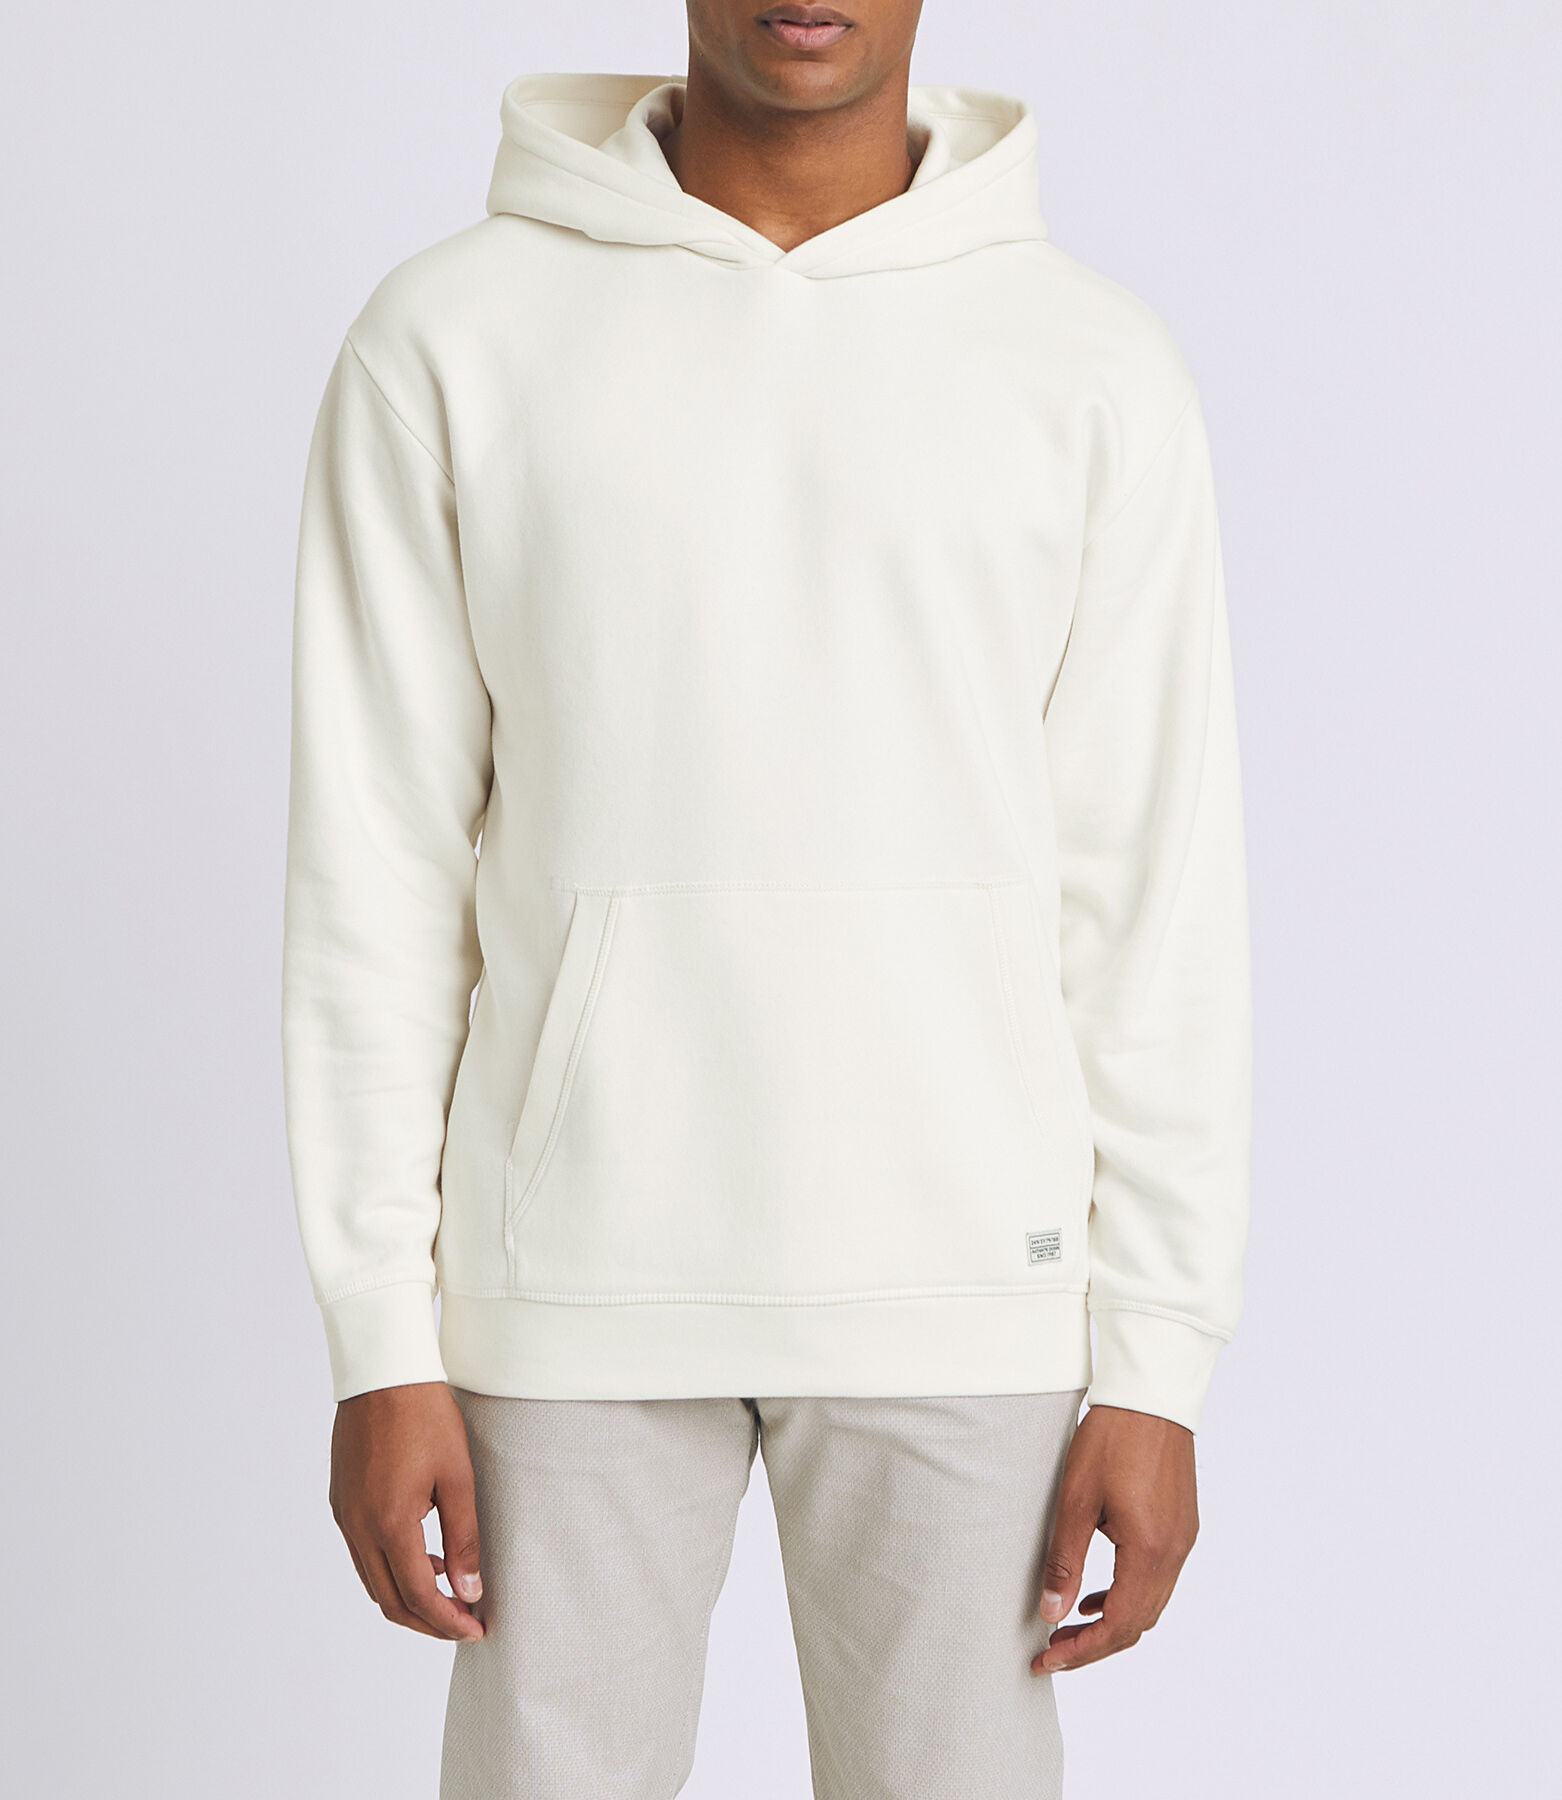 SWEAT CAPUCHE TOUT DOUX - POLYESTER RECYCLE